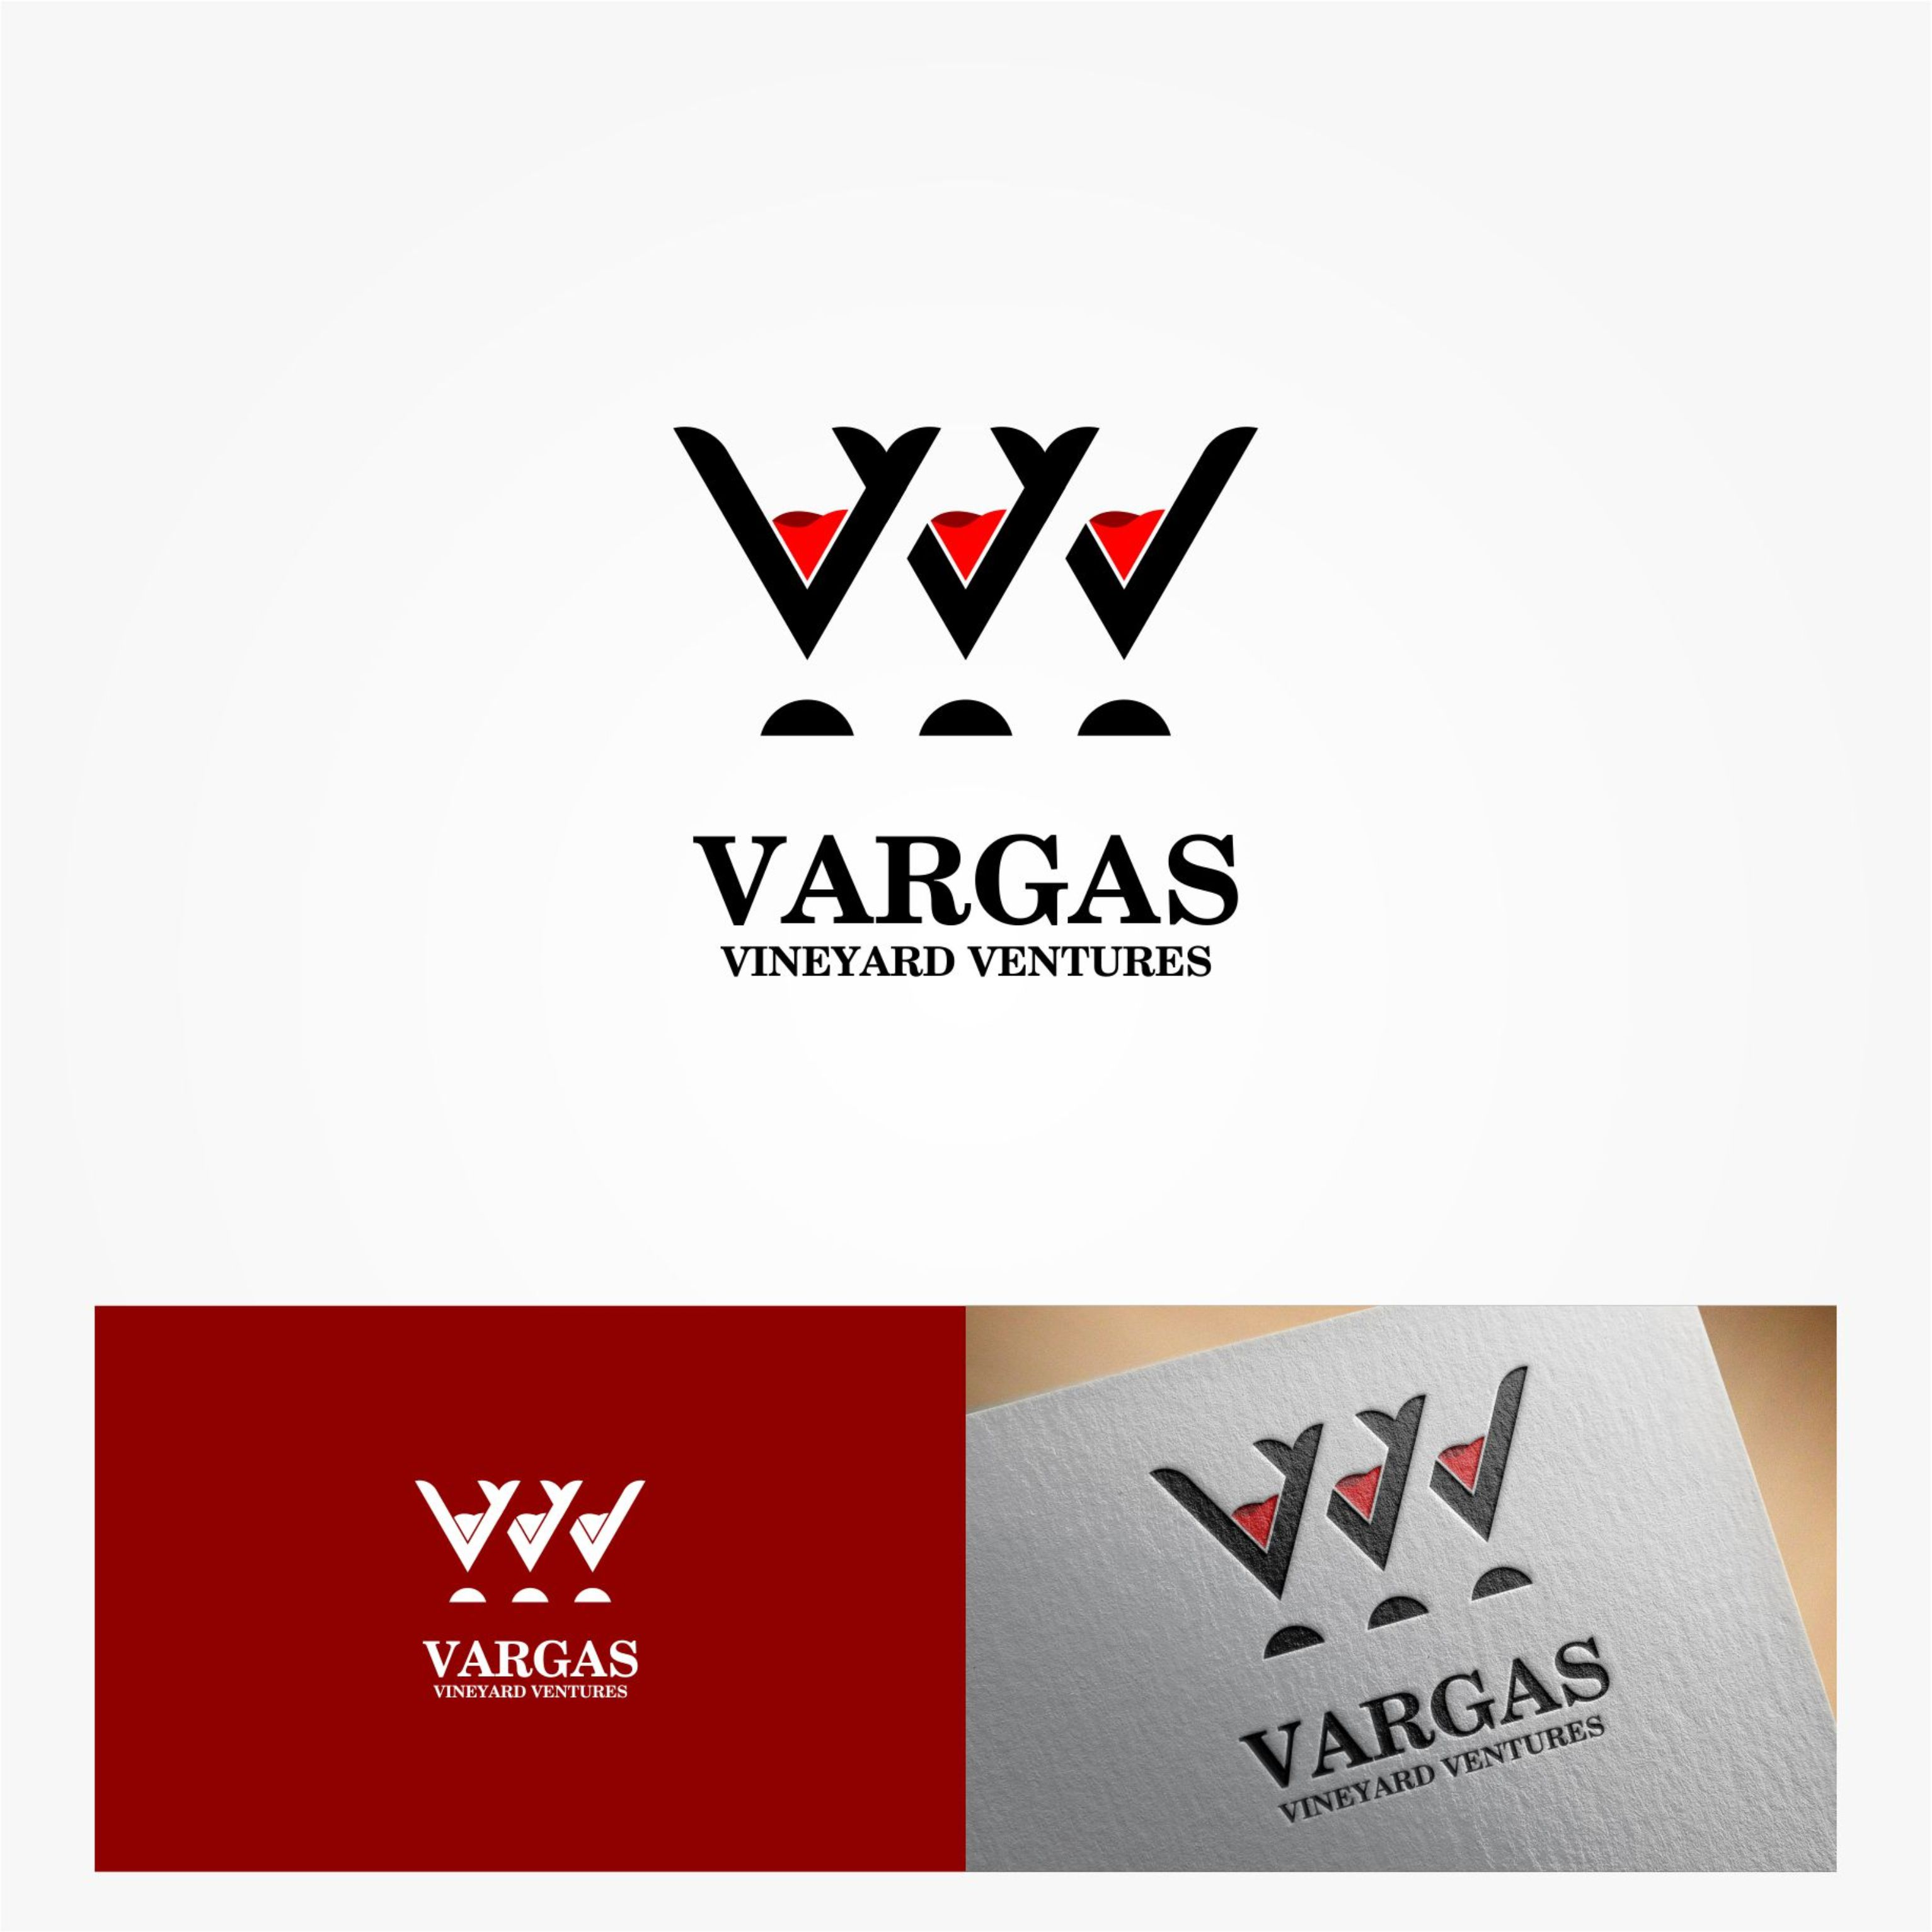 i will design amazing minimalist modern logo for your business and company